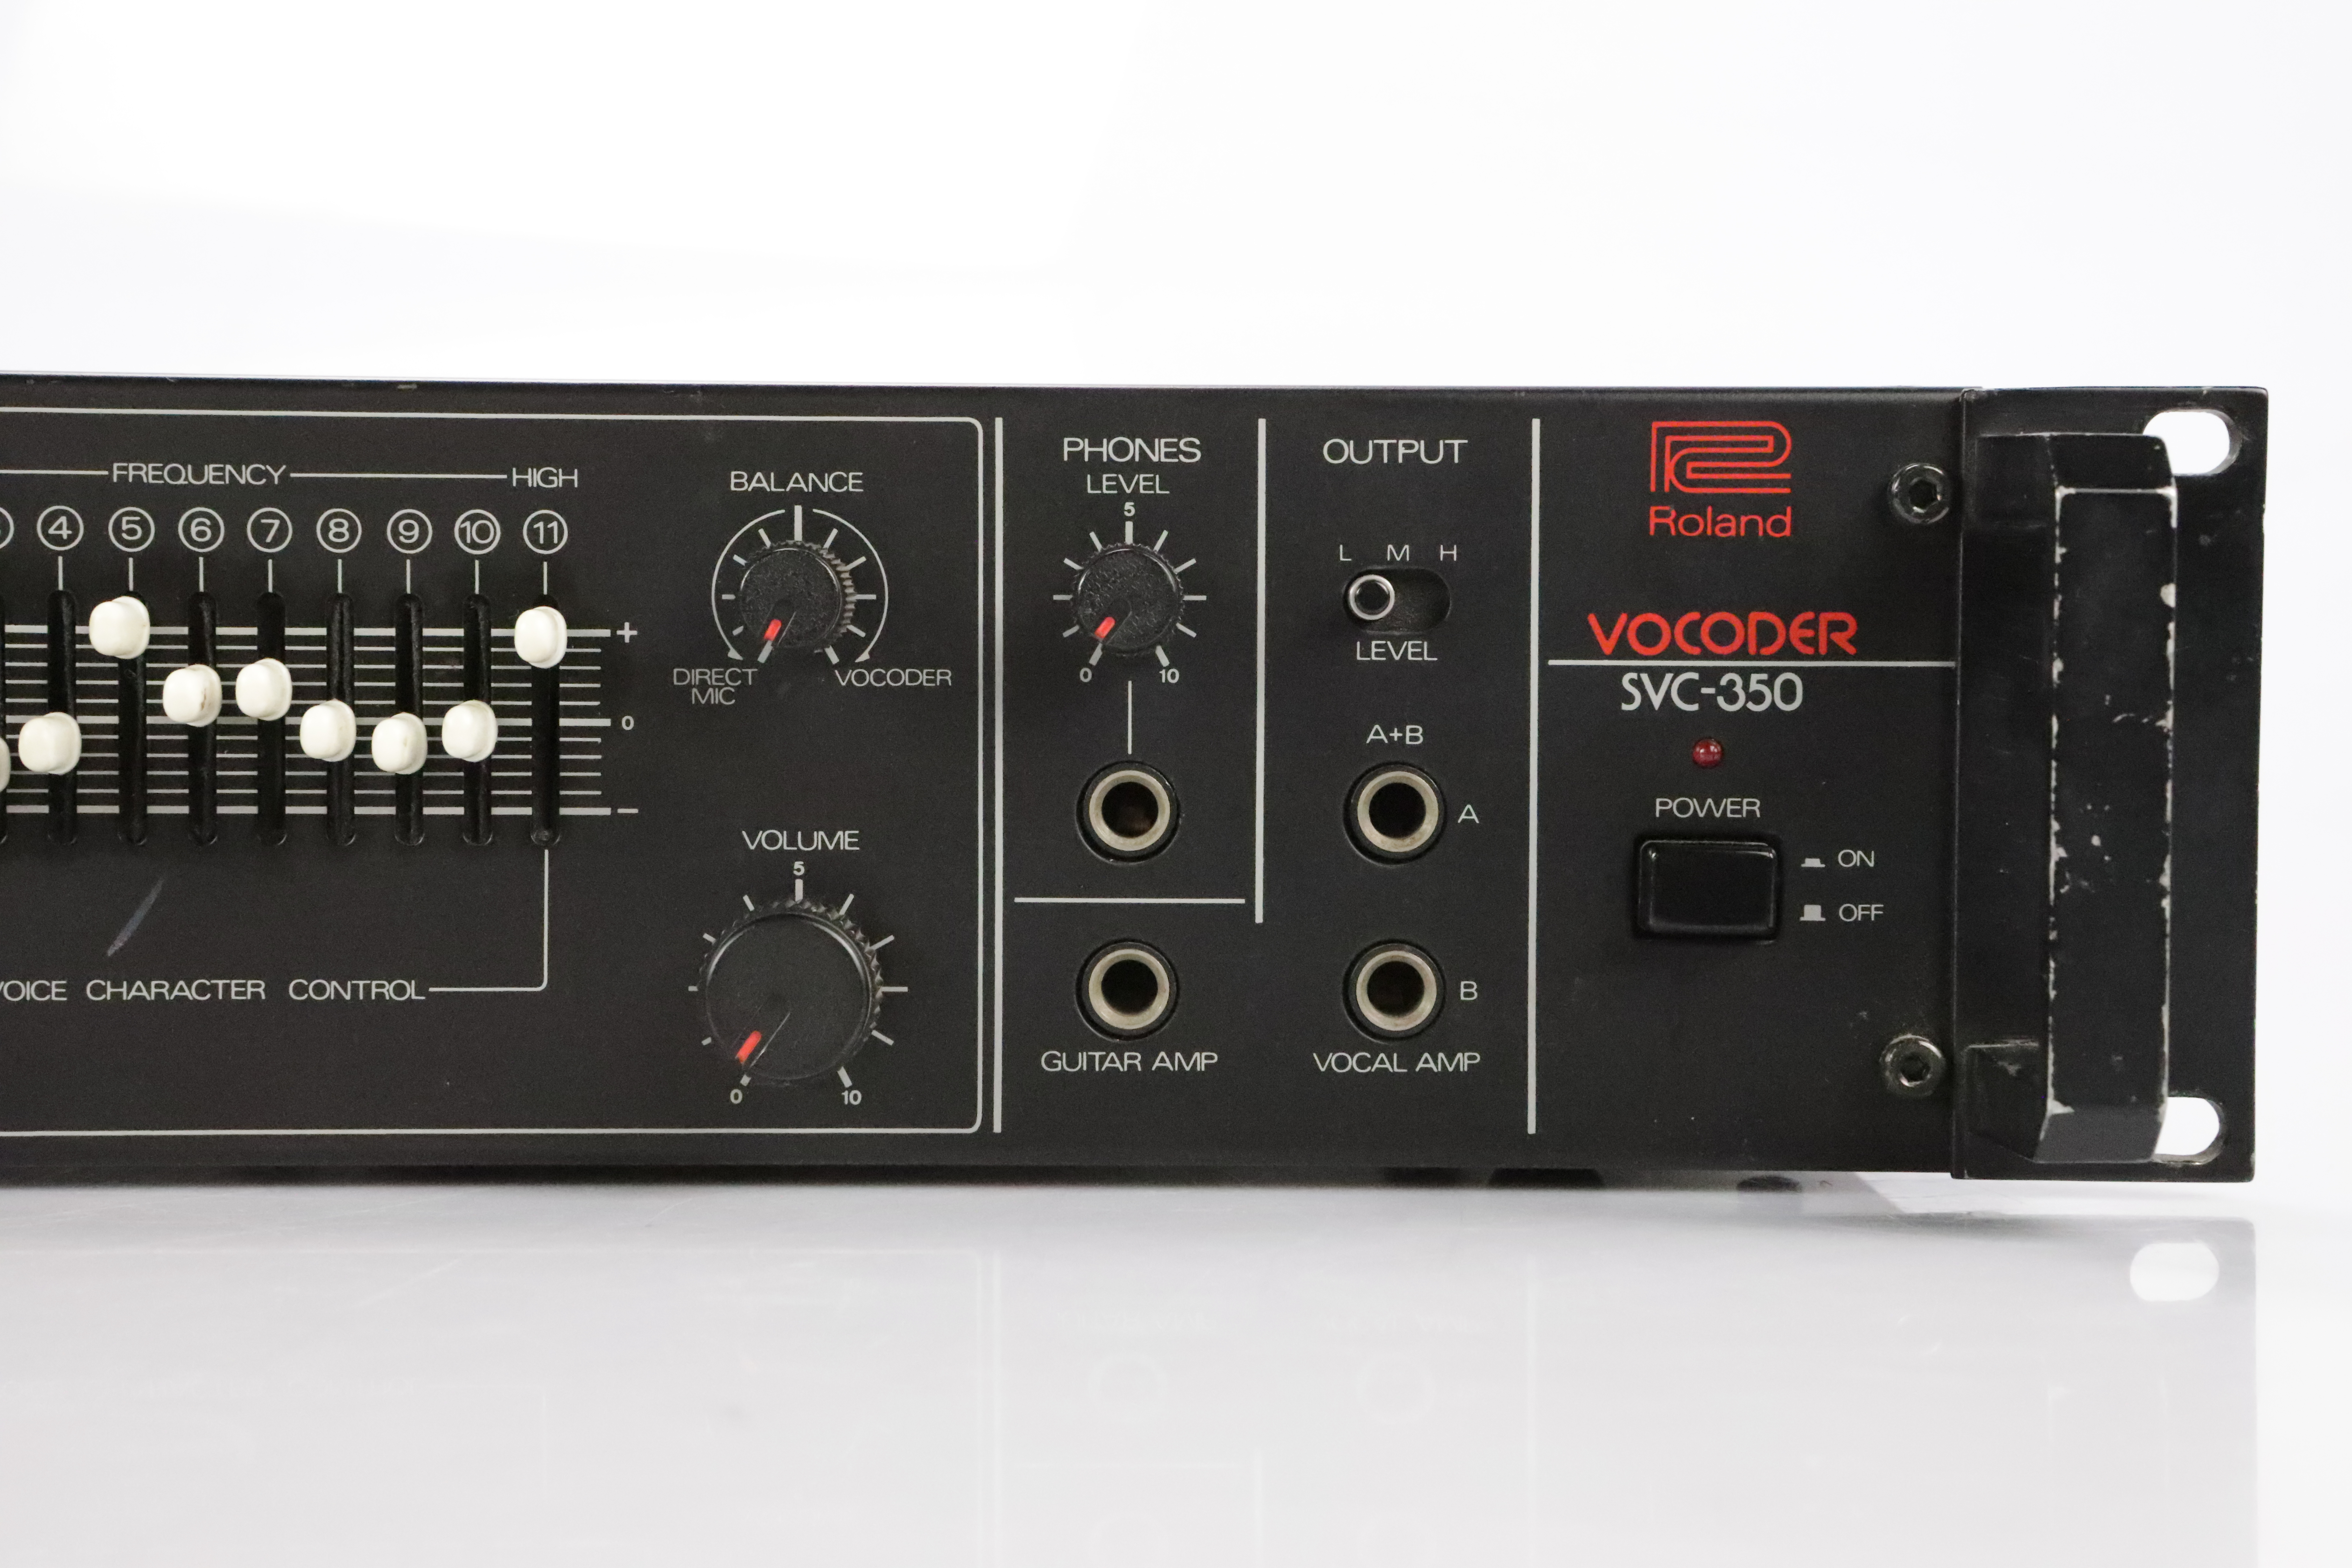 Roland SVC-350 11-Band Analog Vocoder Rack Effect Processor SVC350 #34755